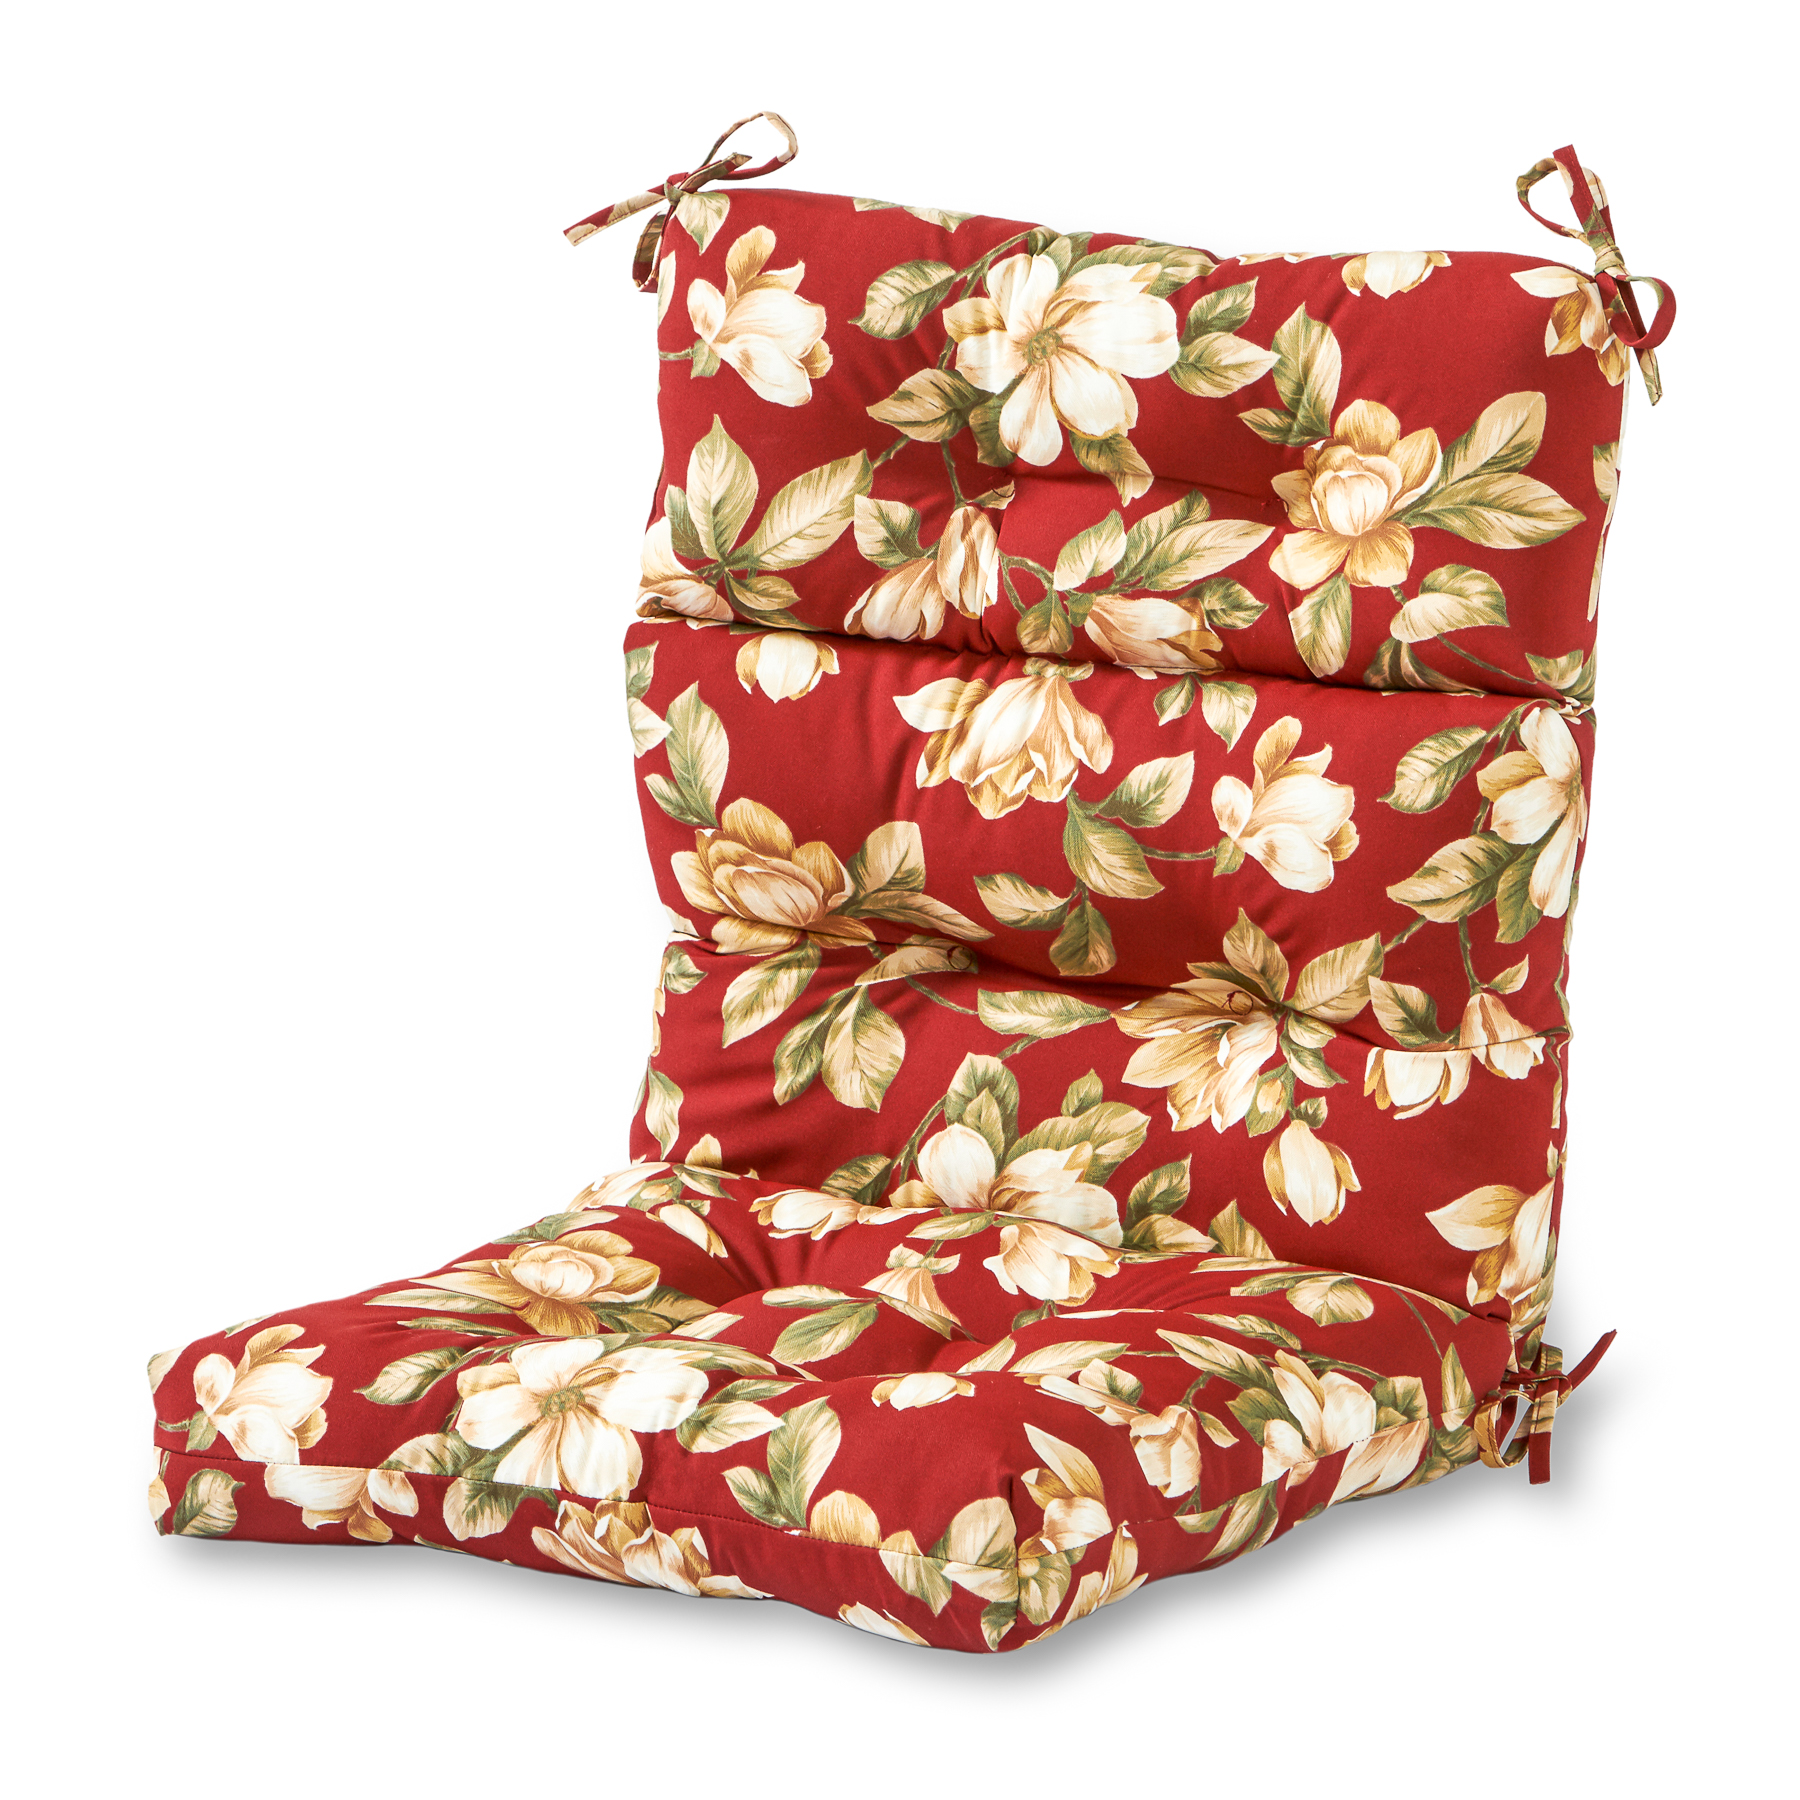 Greendale Home Fashions Roma Floral Outdoor High Back Chair Cushion